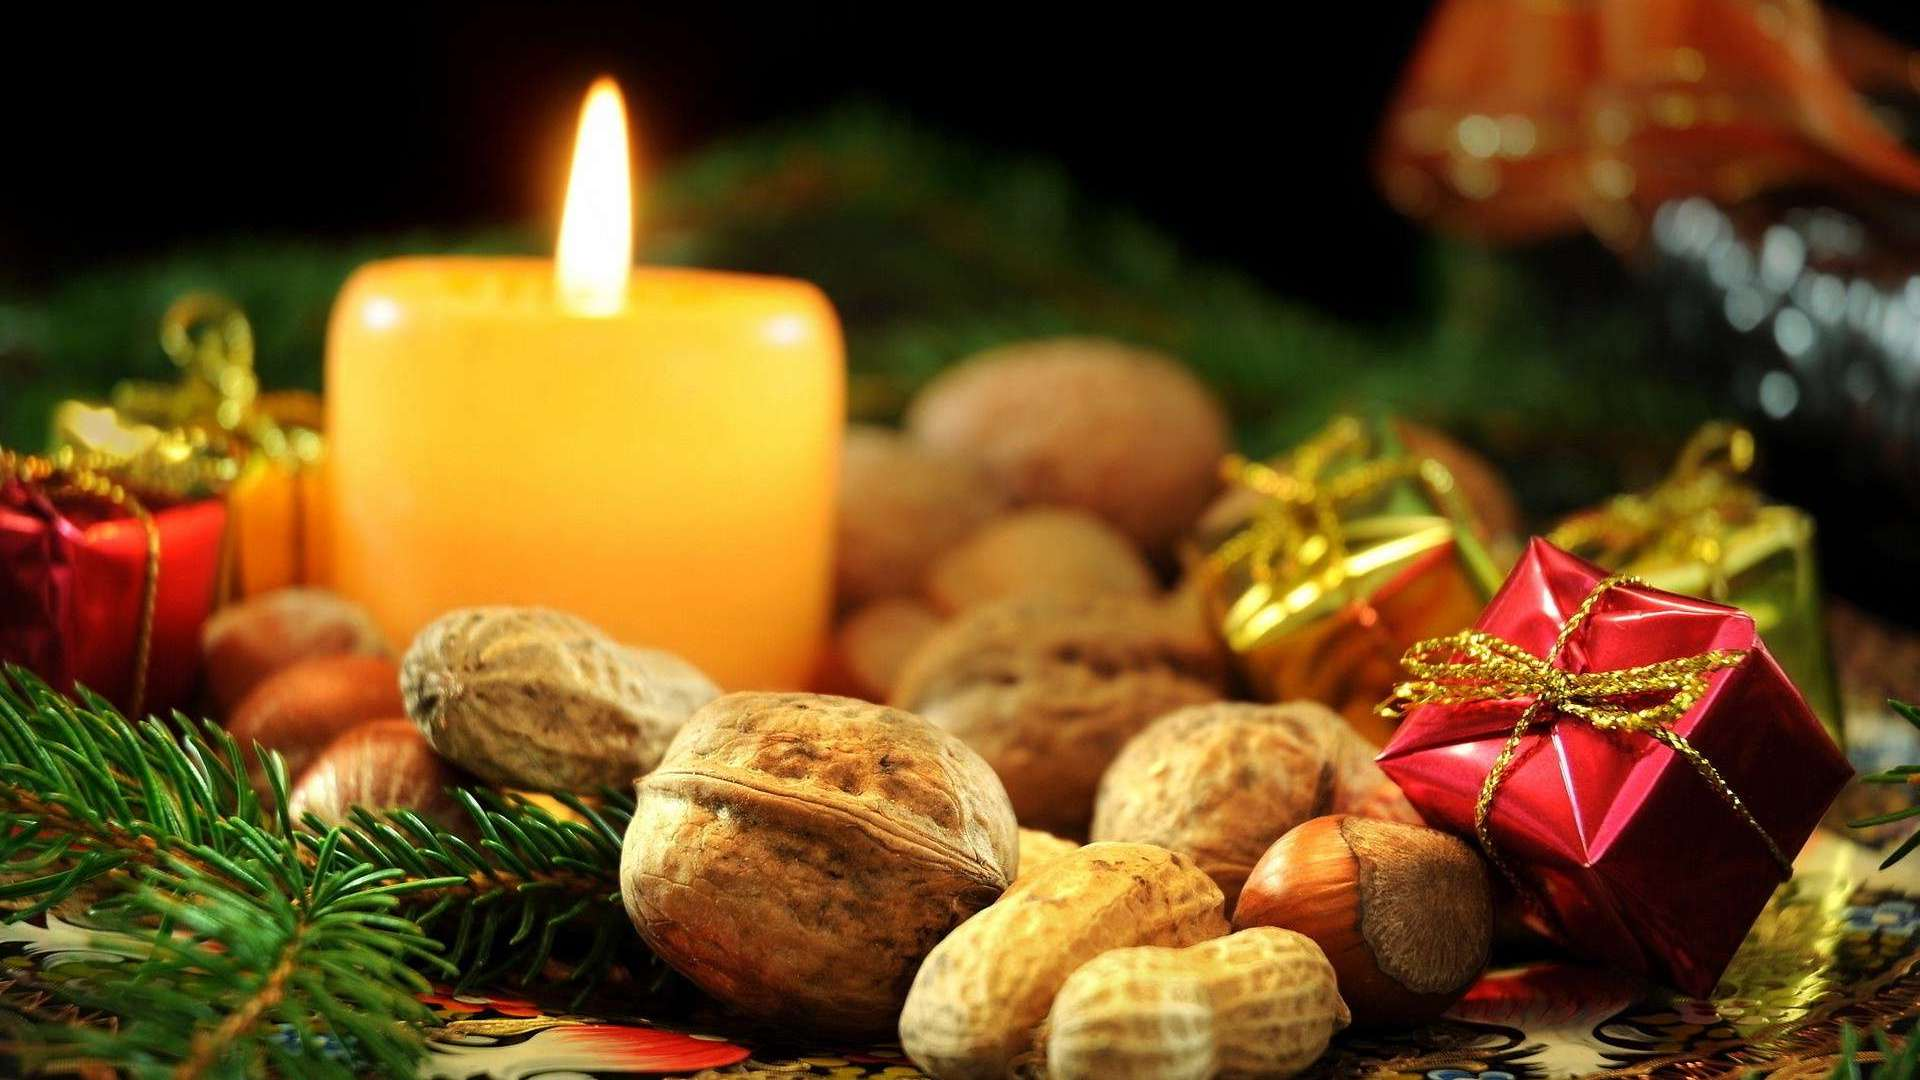 Christmas 2012 Wallpapers in HD Free Download For Mac & Windows